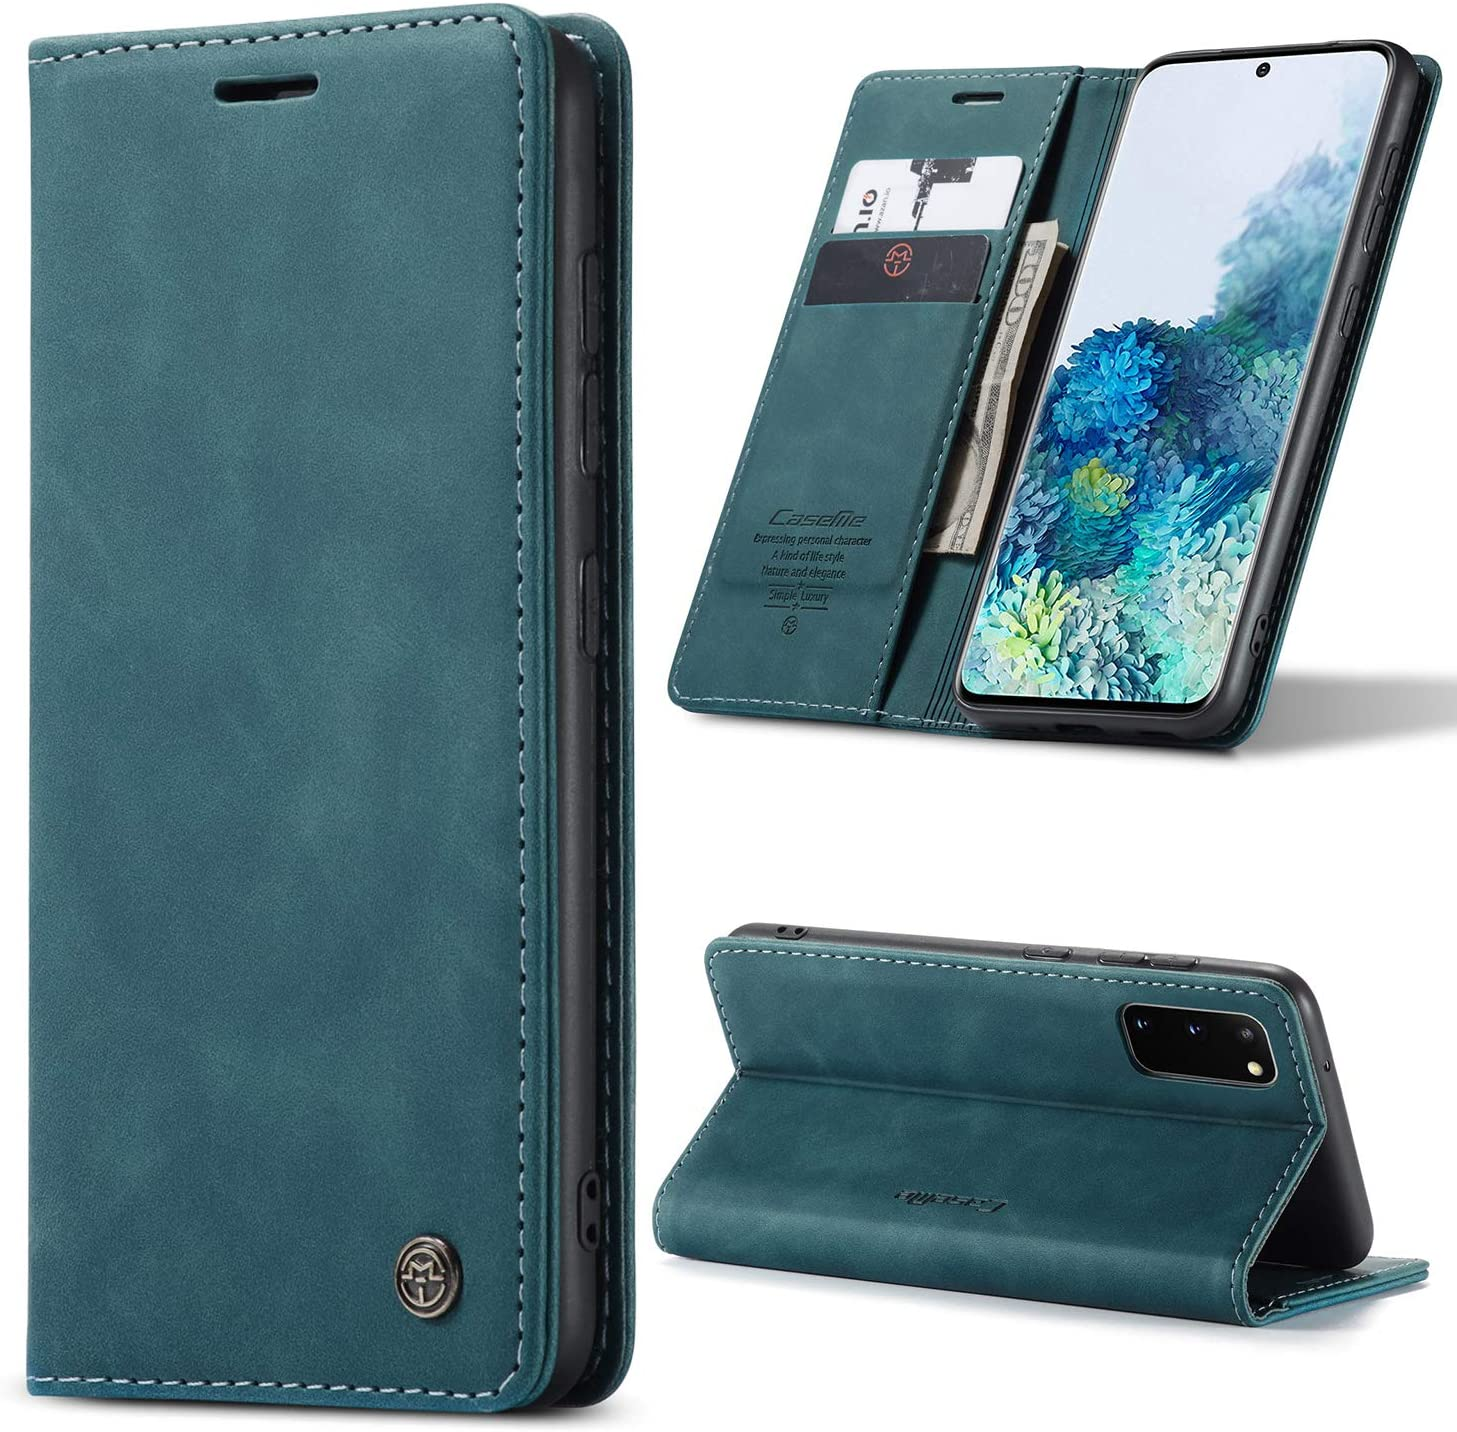 Kowauri Galaxy S20 FE 5G Case,Leather Wallet Case Classic Design with Card Slot and Magnetic Closure Flip Fold Case for Samsung Galaxy S20 Fan Edition 5G (Blue)